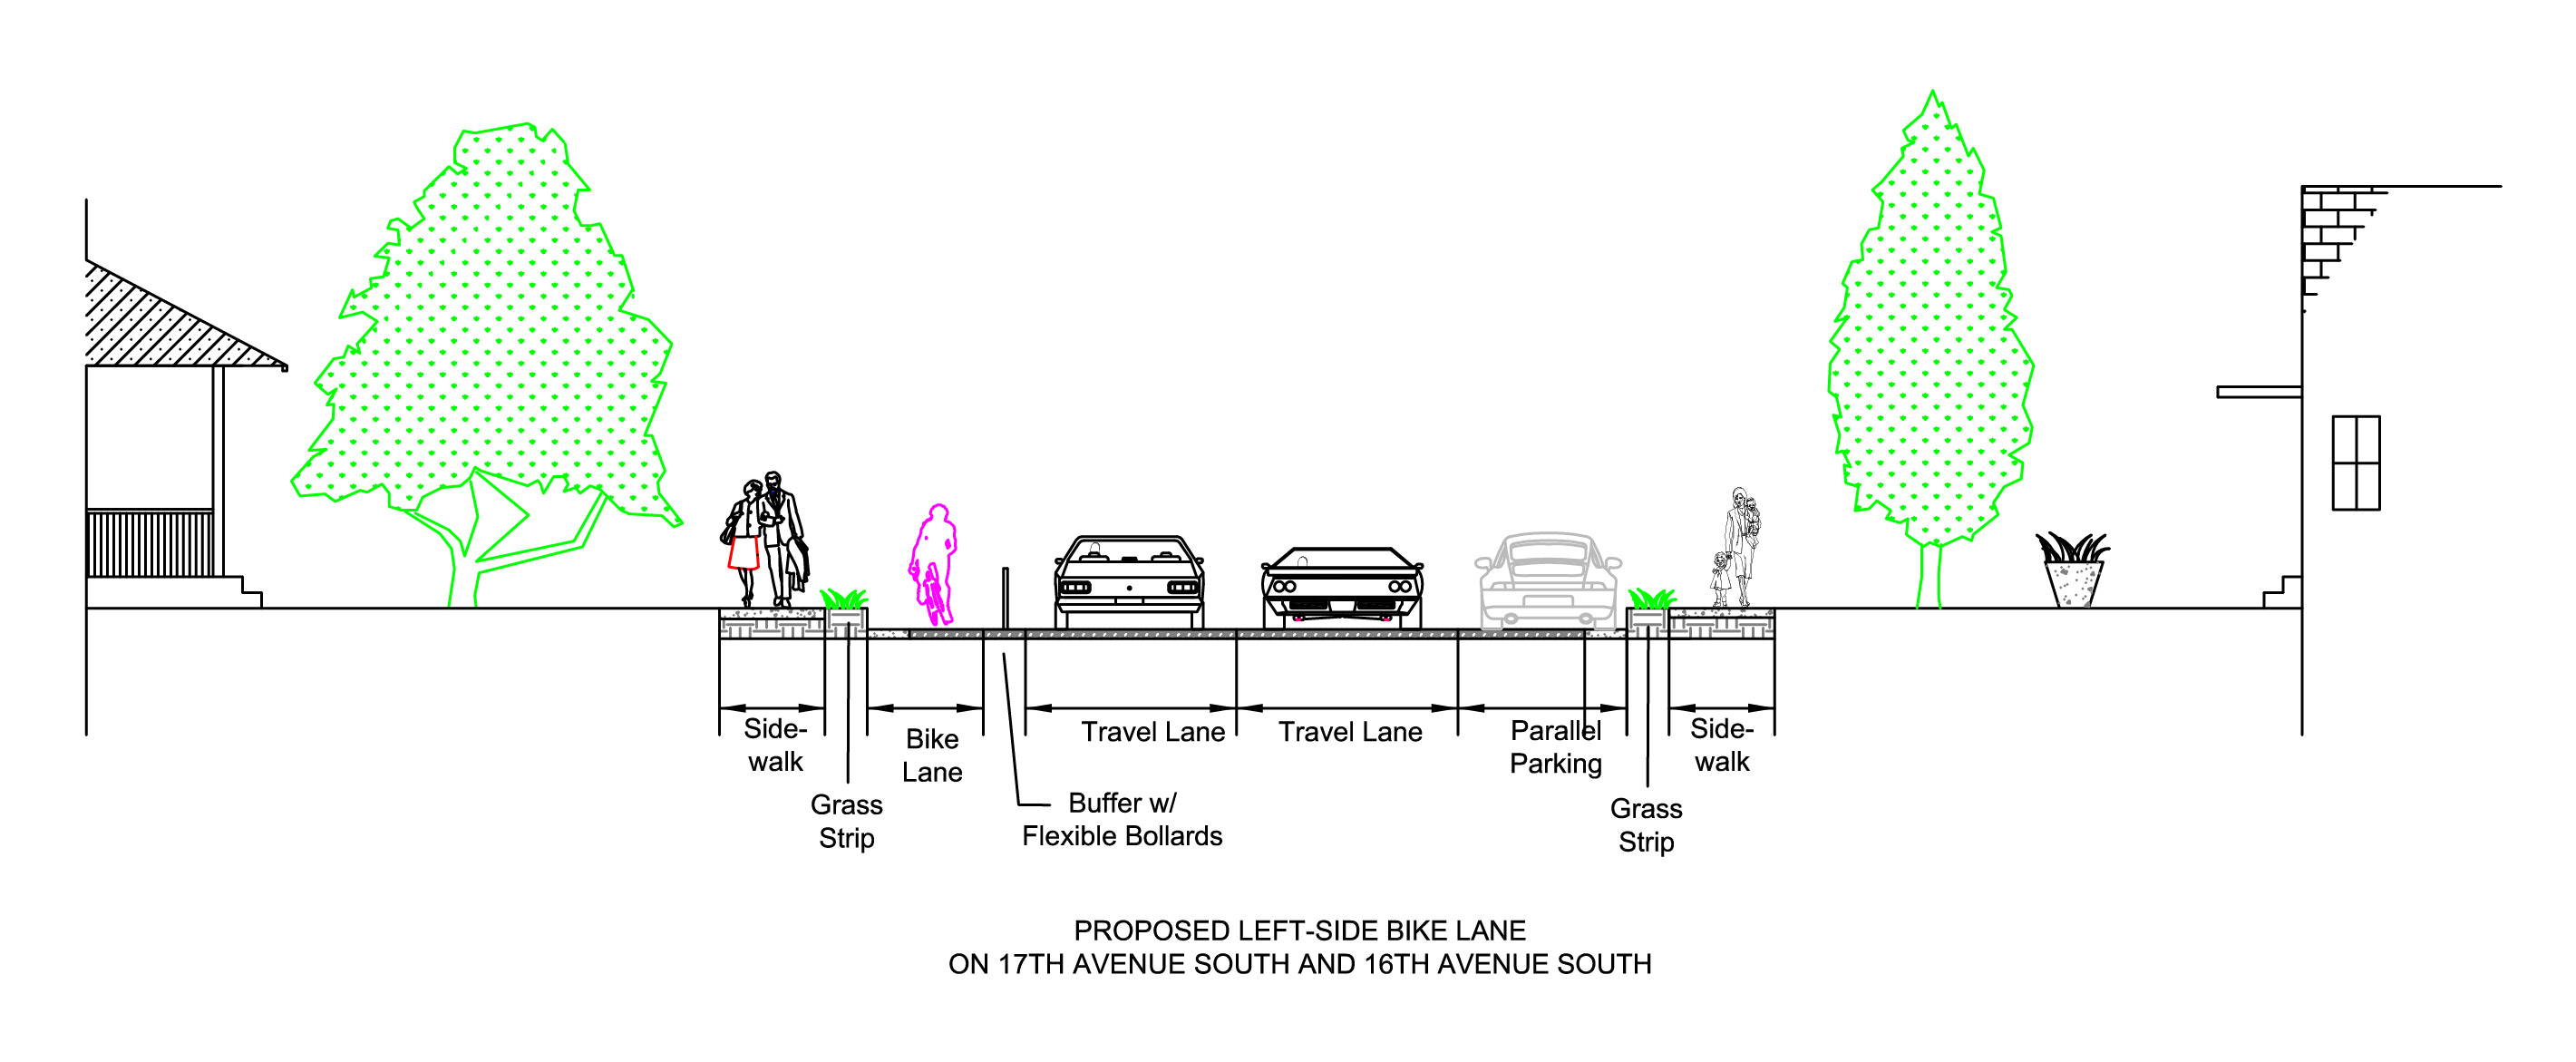 Proposed_Left-Side_Bike_Lane_Cross-Sections-02.jpg